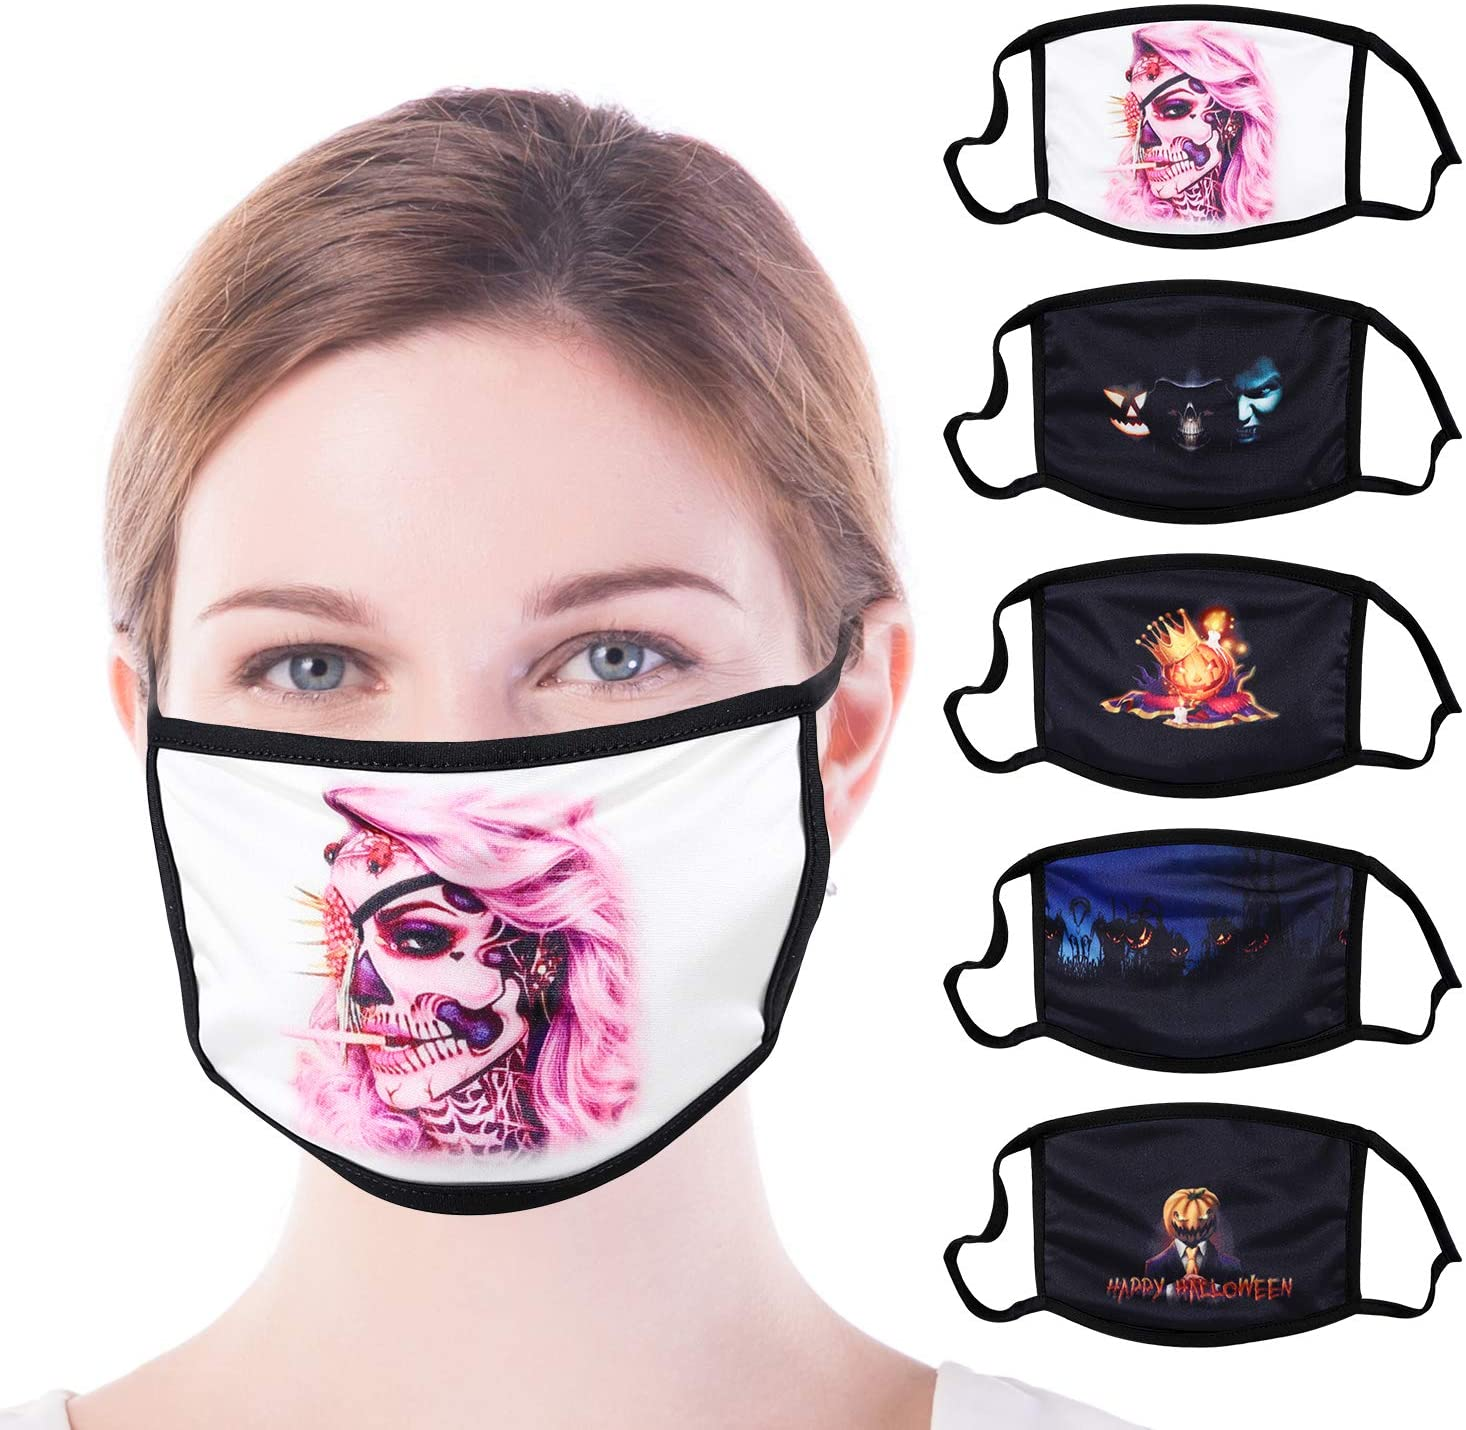 5 Pack Reusable Facial Protection Cover with Pumpkin Pattern Anti-Fog Dust-Proof Bandanas Anti-Haze Washable Cotton Full Face Protection Masks for Halloween